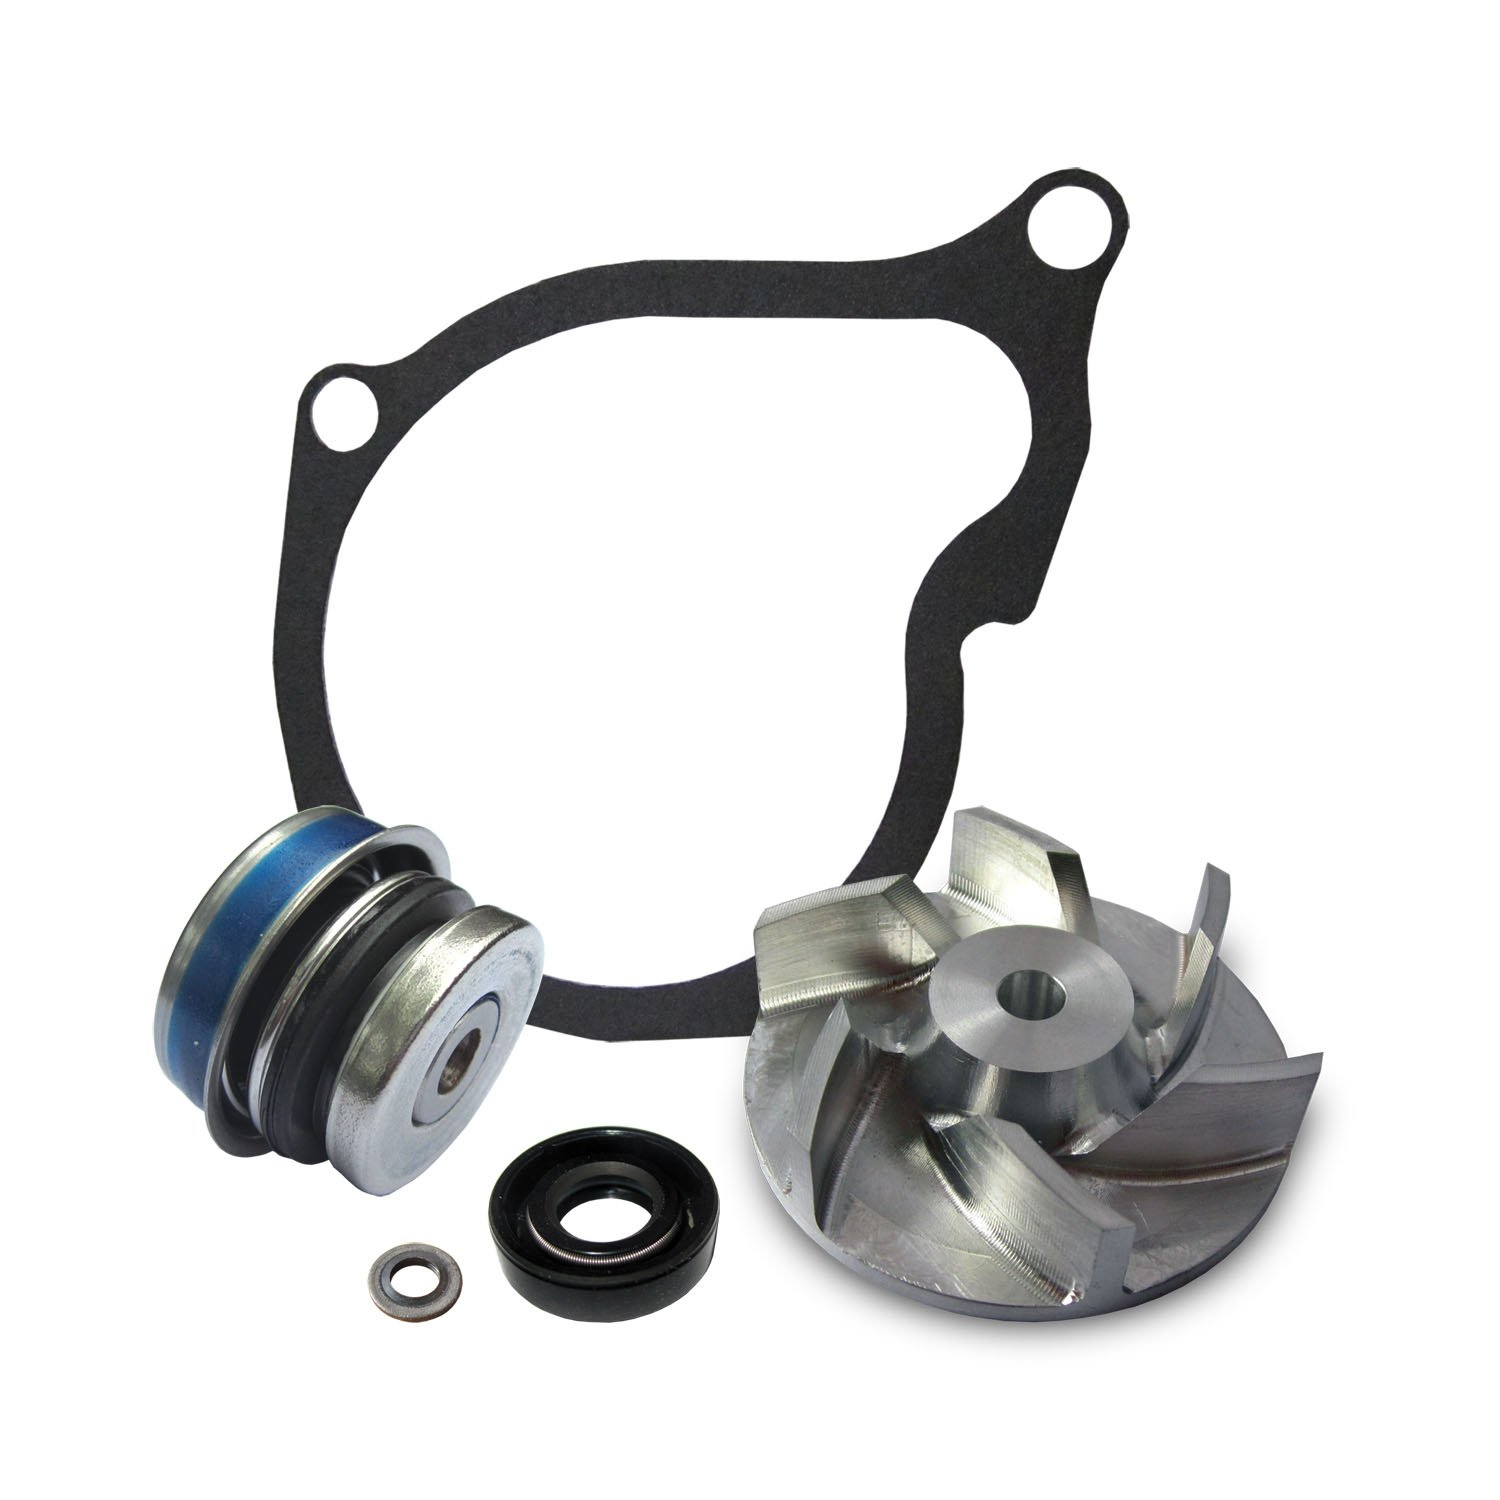 Polaris Sportsman 400 500 Water Pump Rebuild Kit with Billet Impeller обогреватель polaris pch 1024 белый